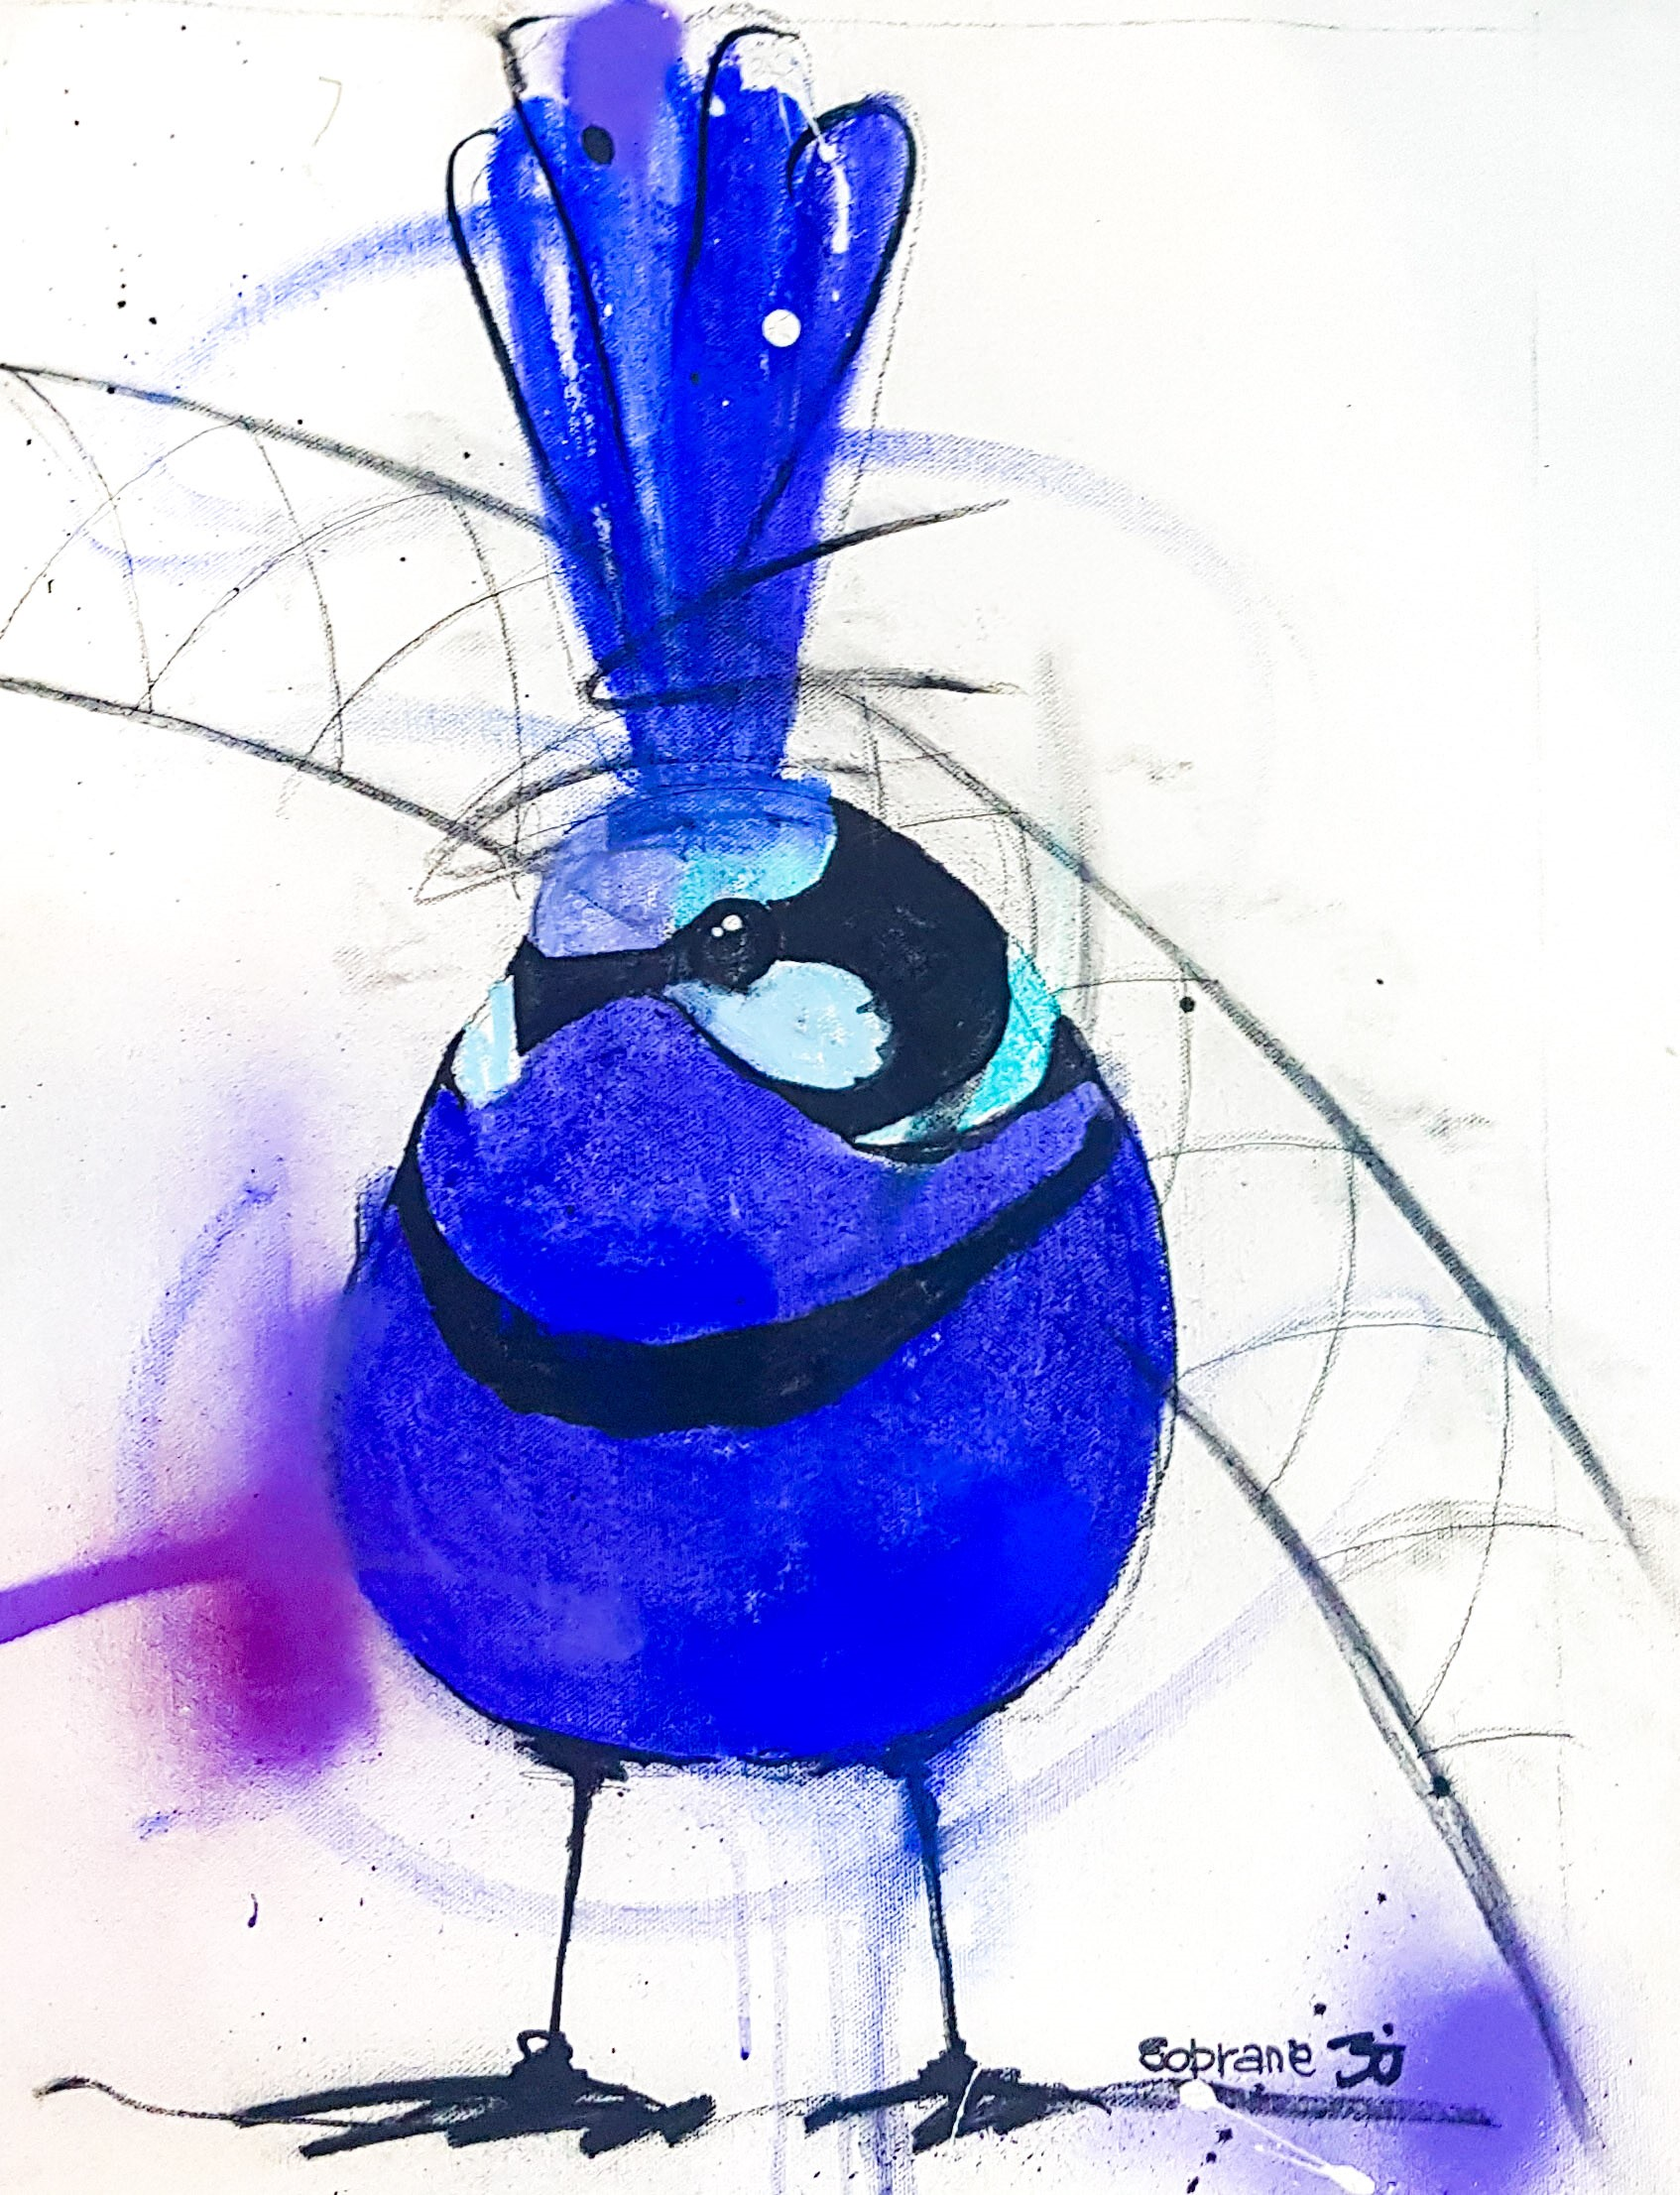 Splendid Blue Wren III Original Original artwork completed in Pastels, spray-paint, charcoal and enamel.  Artwork is on canvas 53 x 38 cm FREE SHIPPING ON ALL ORIGINALS WORLDWIDE